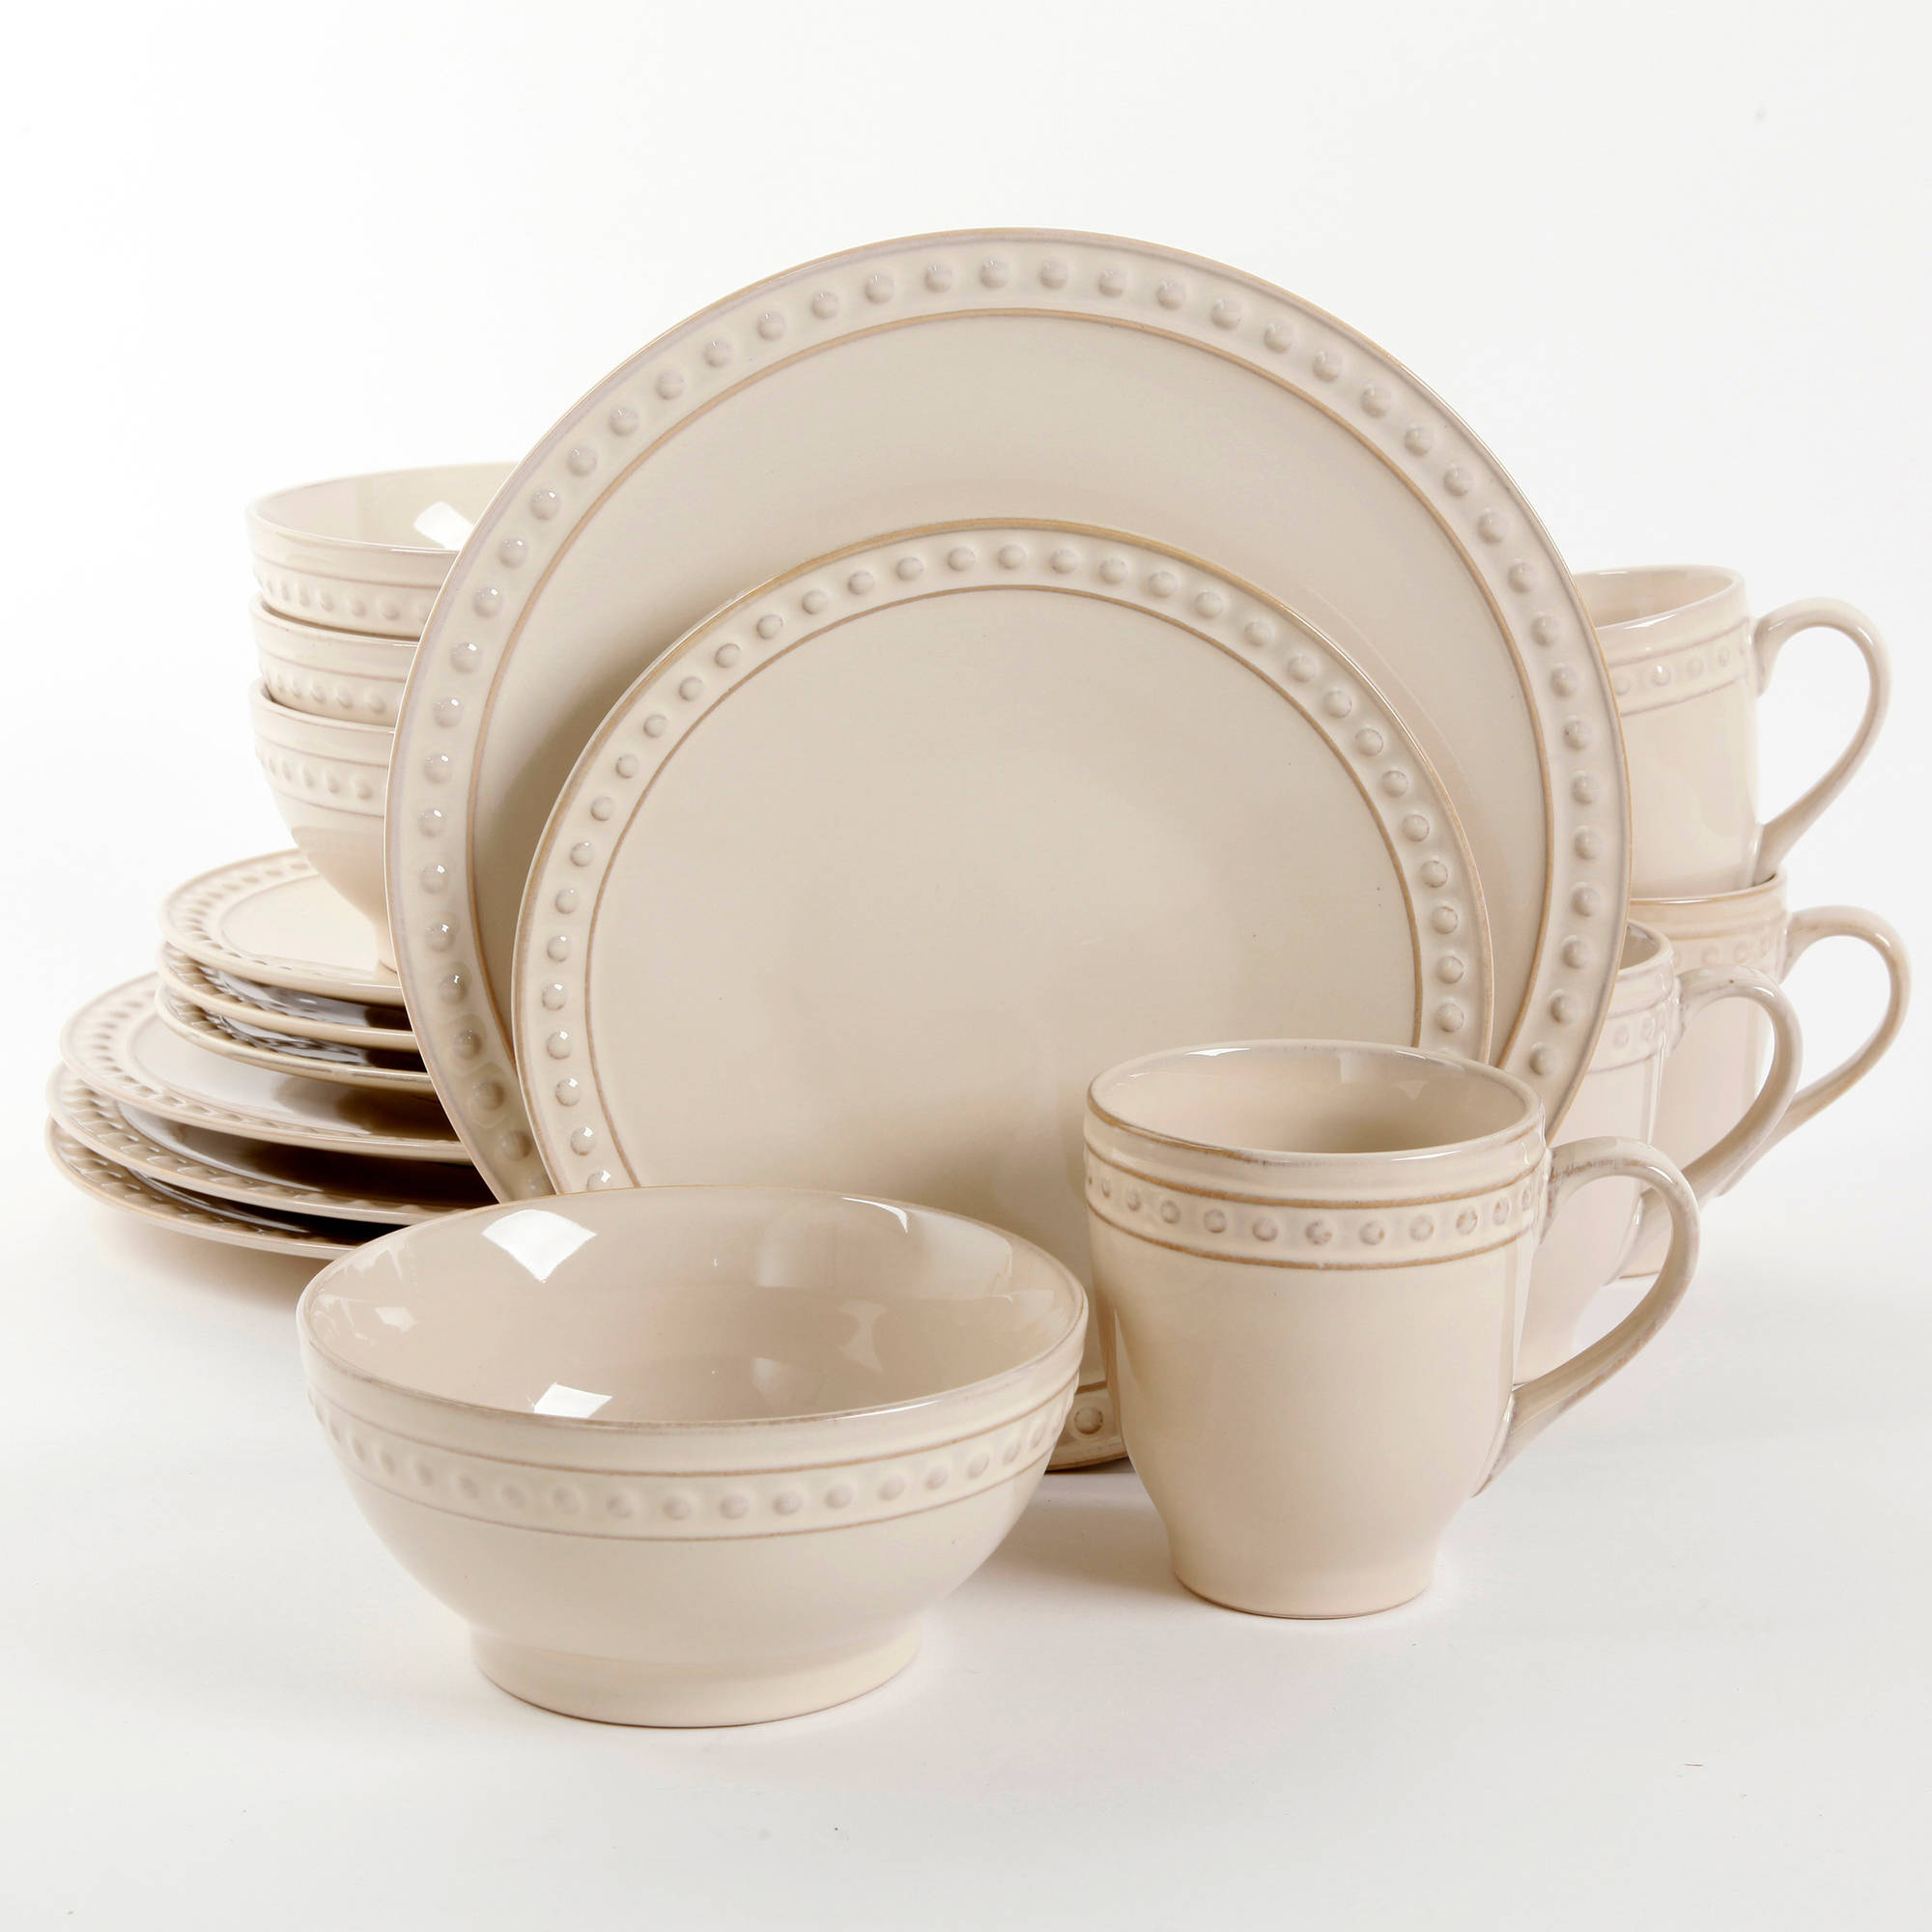 Delicieux Better Homes And Gardens Amity 16 Piece Dinnerware Set